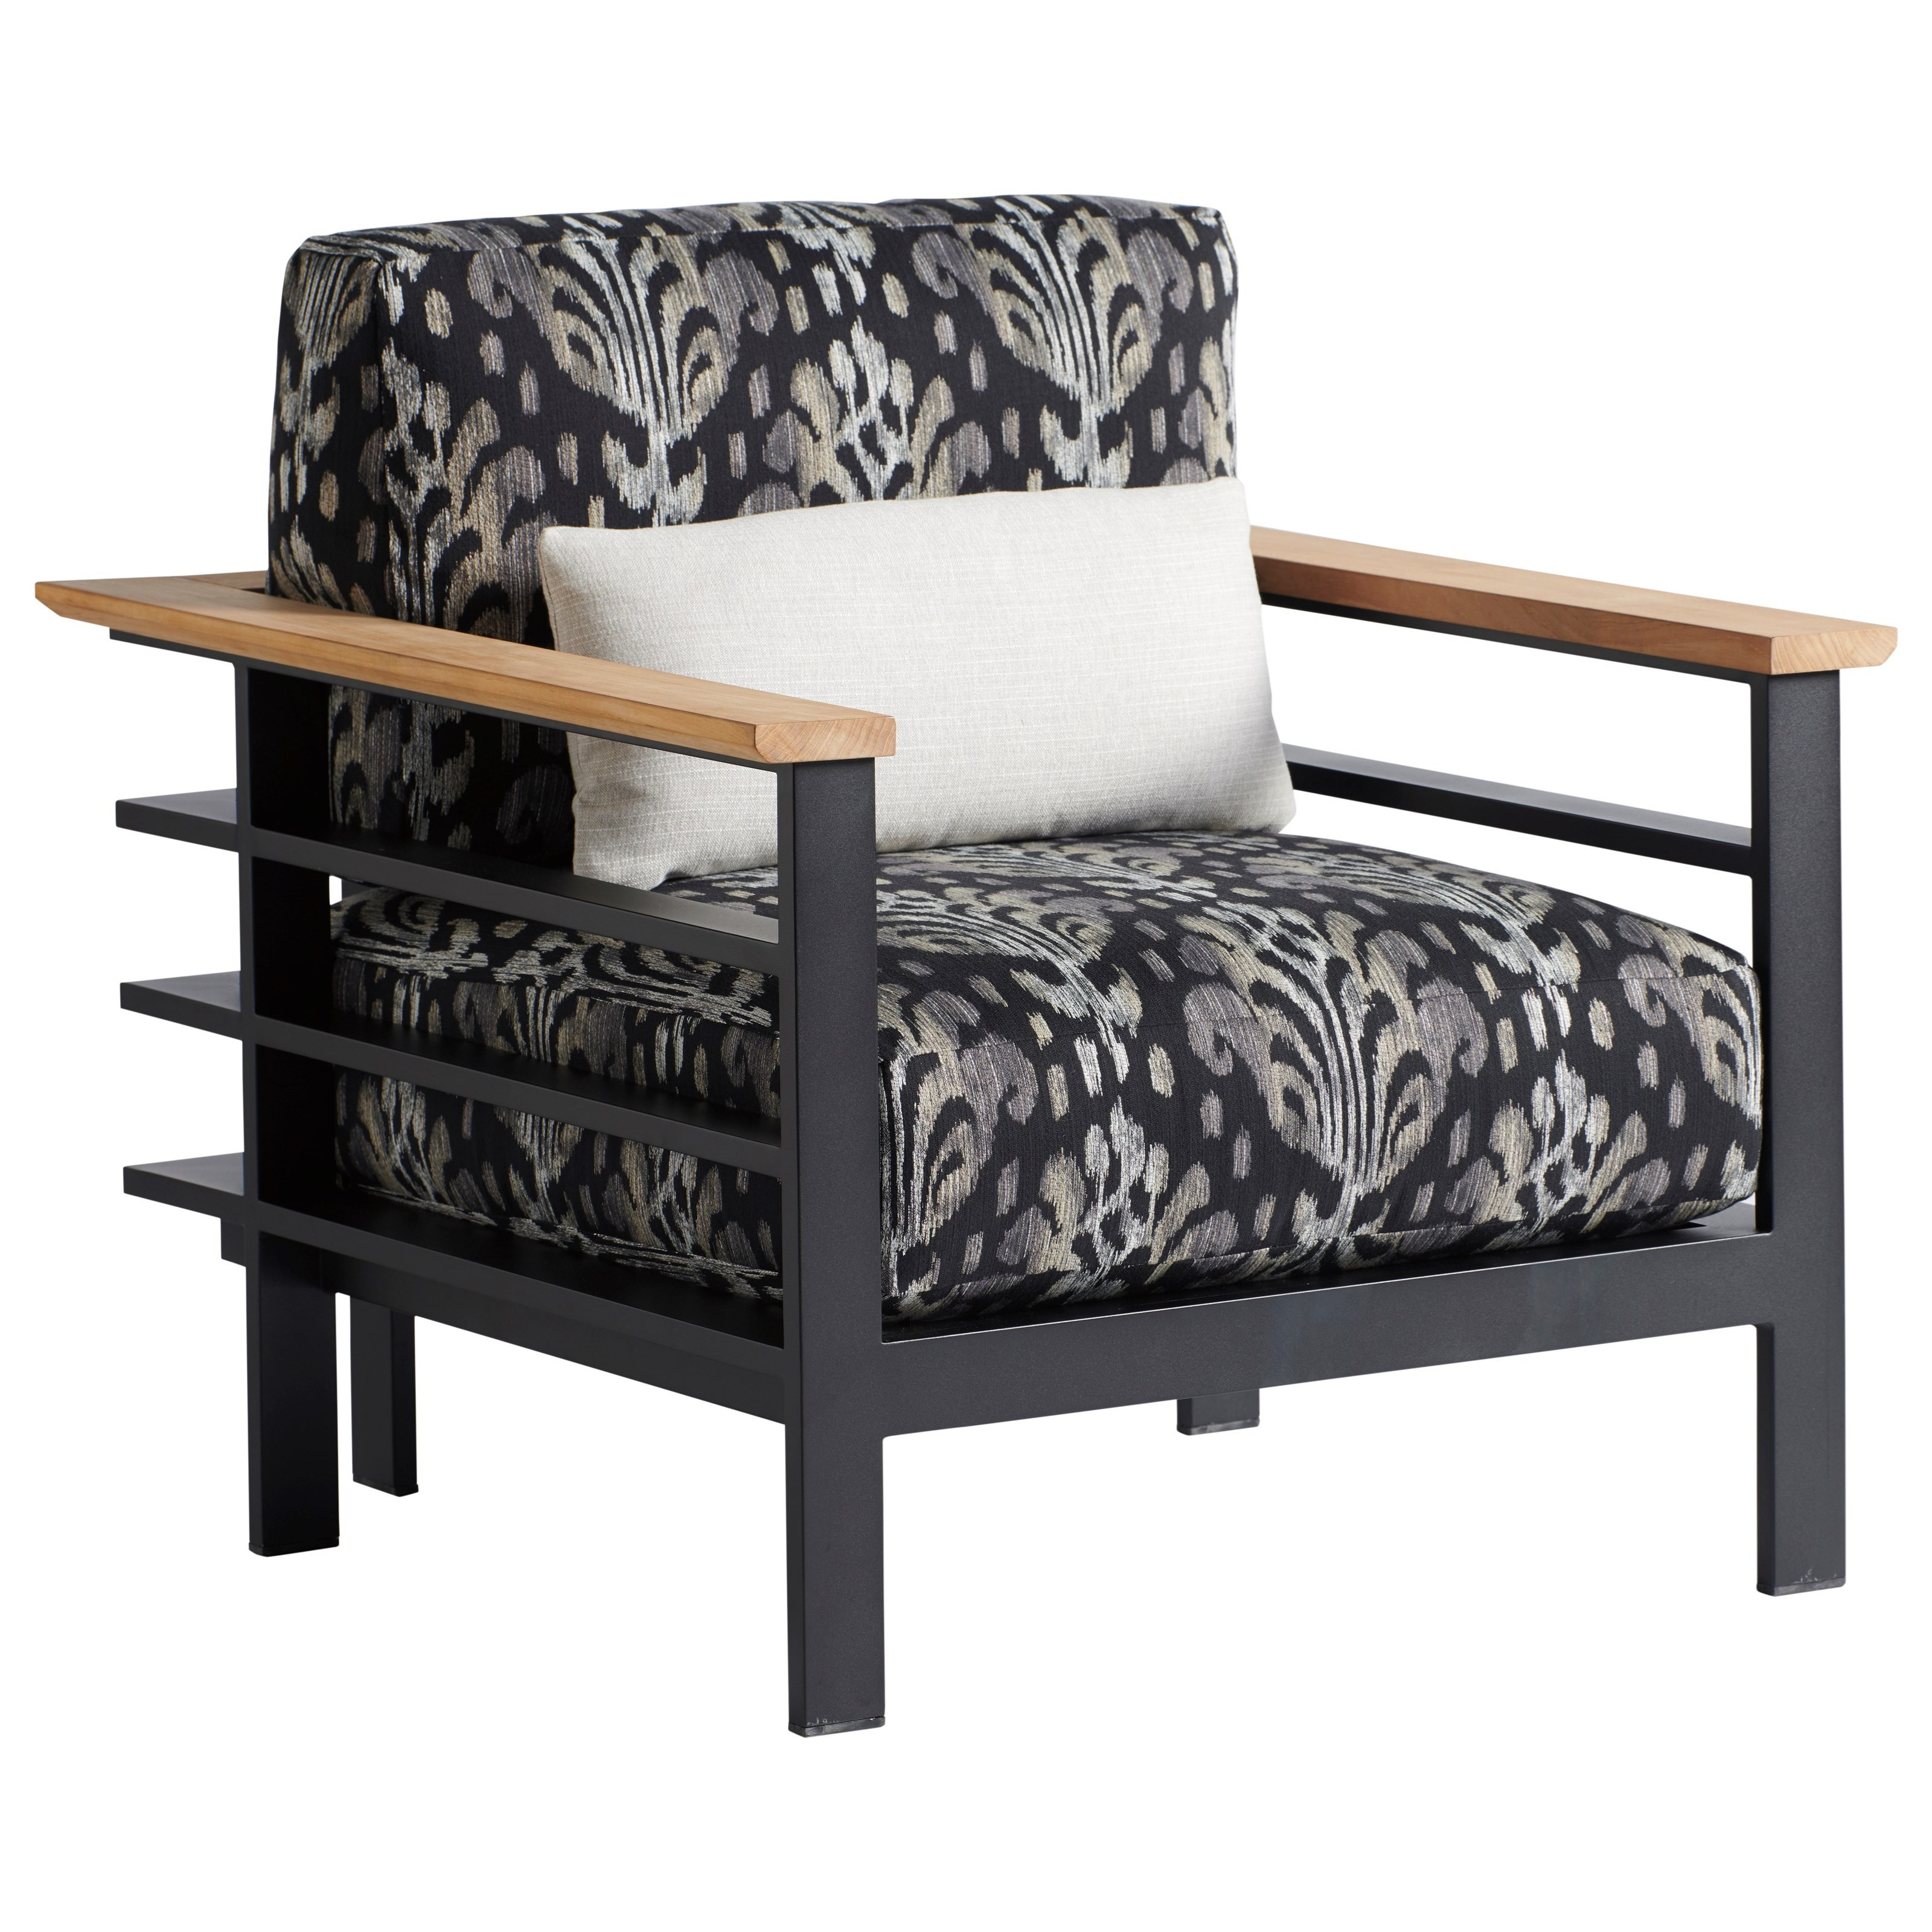 South Beach Lounge Chair by Tommy Bahama Outdoor Living at Baer's Furniture